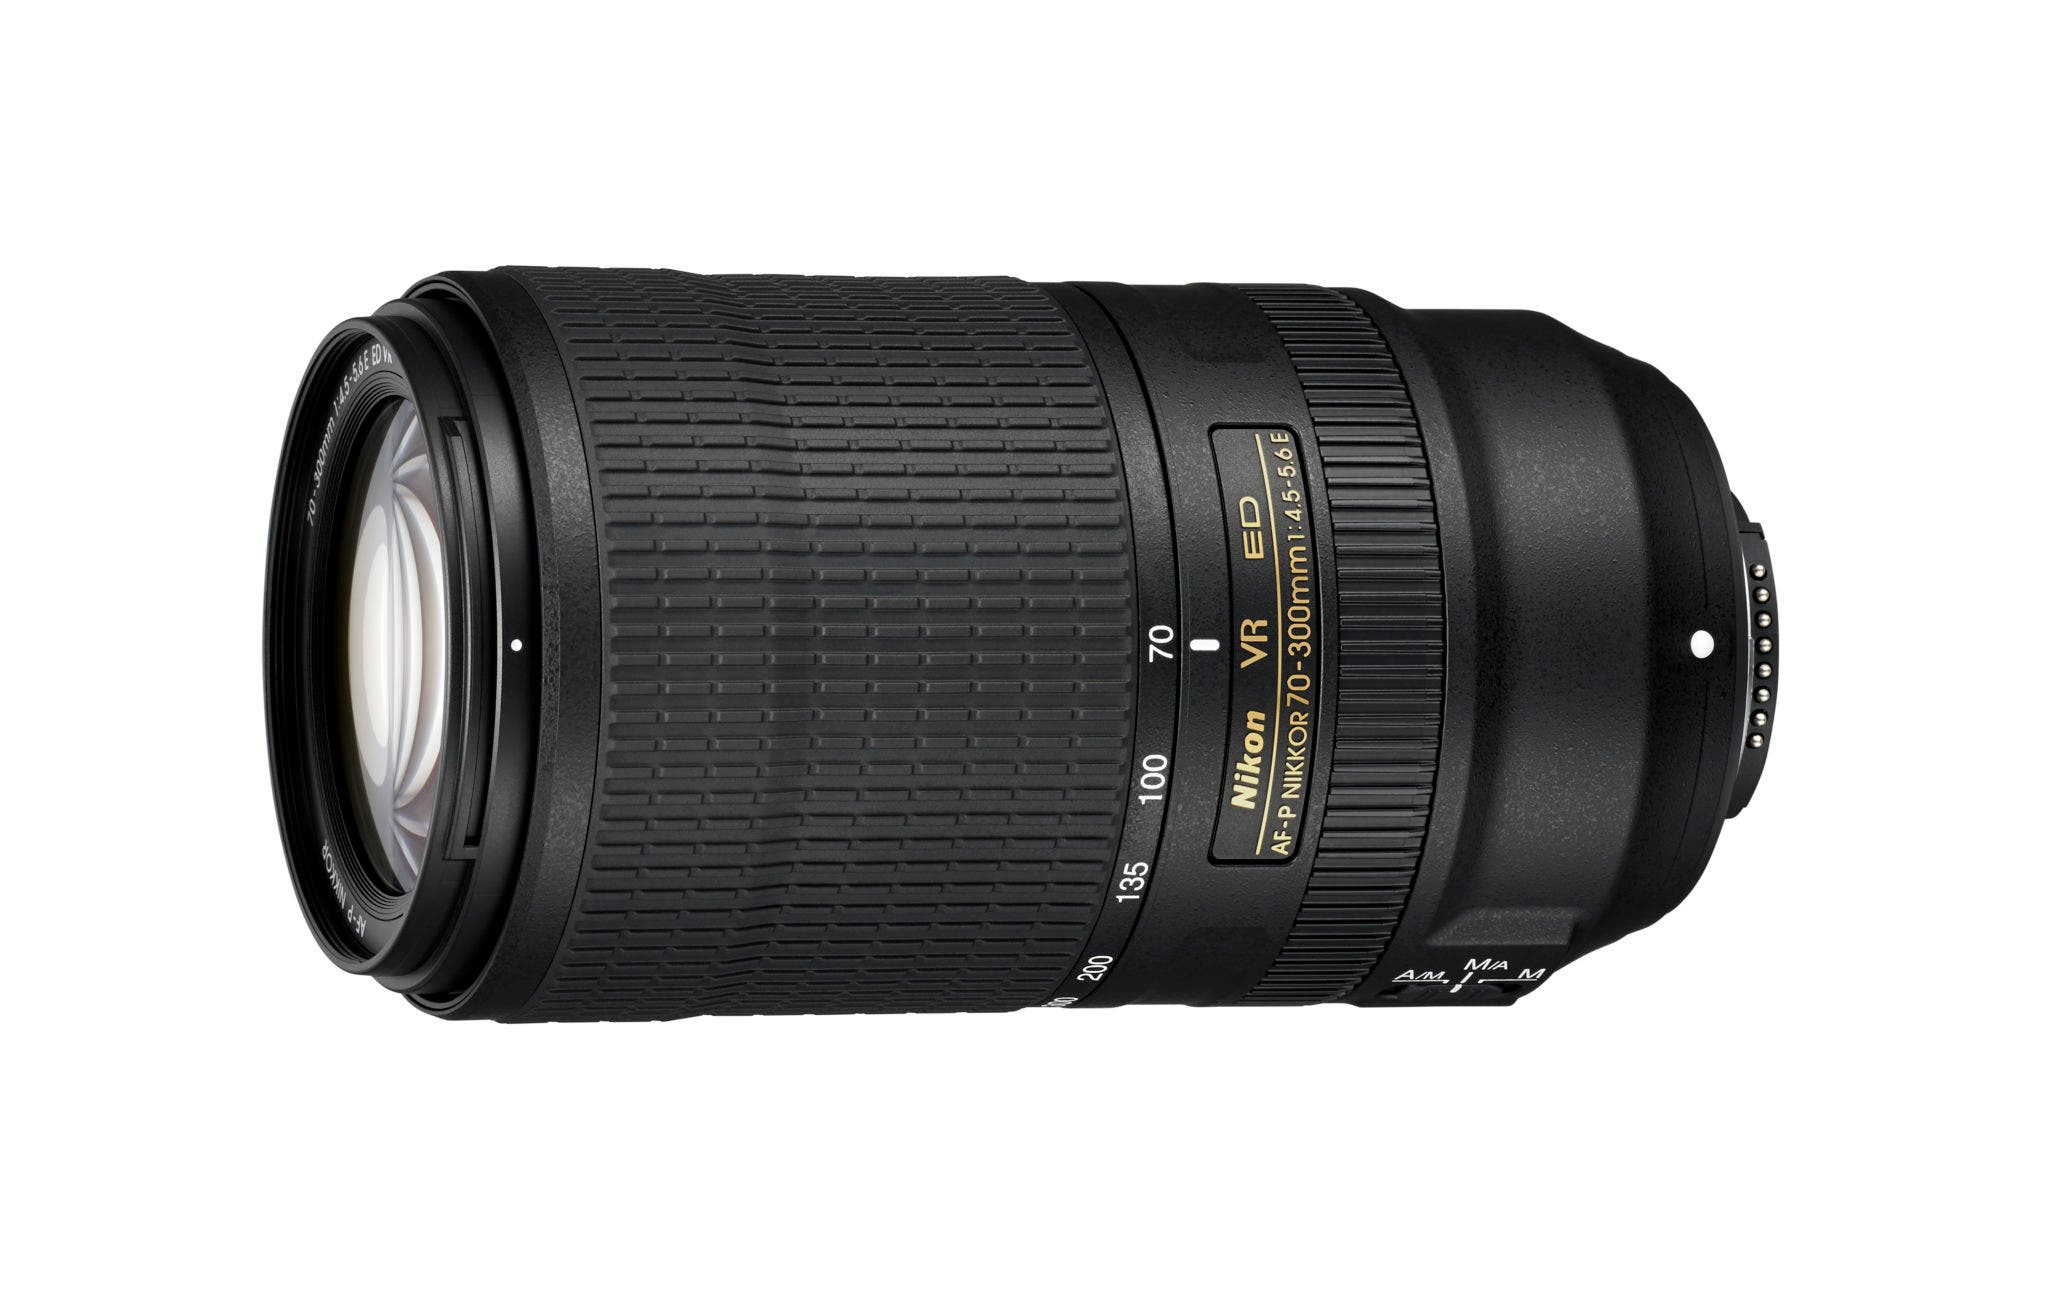 The Nikon AF-P NIKKOR 70-300mm F4.5-5.6 E ED VR Lens Will Work Well for Sports